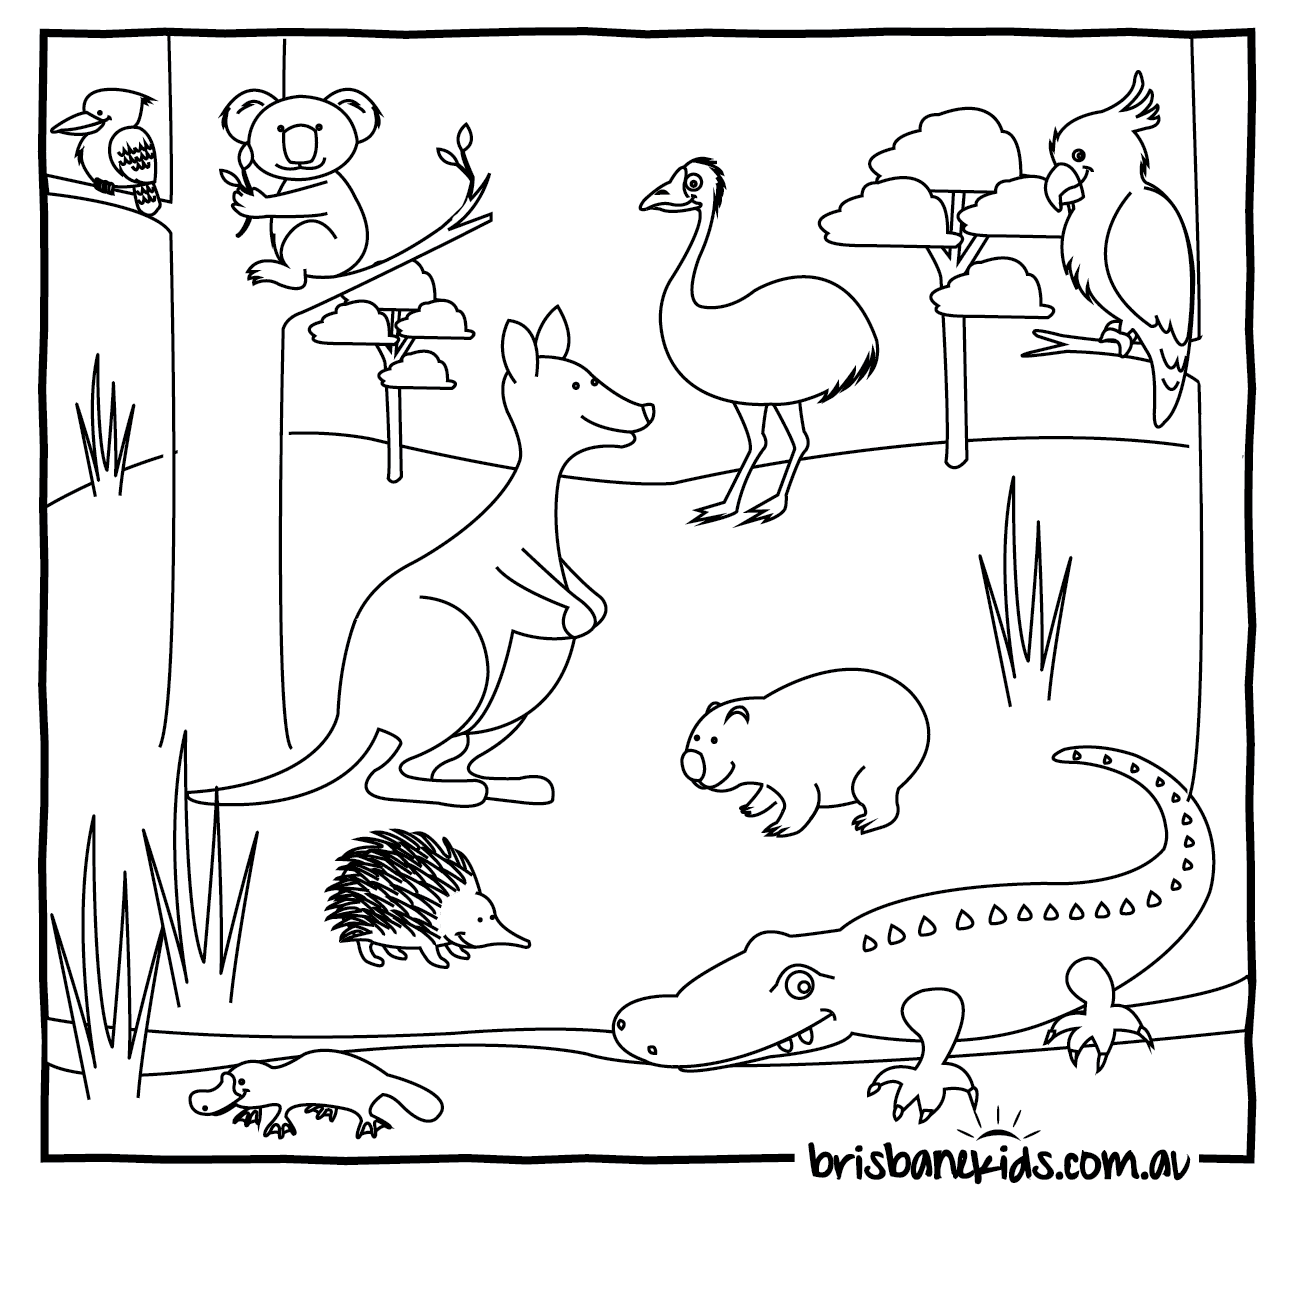 Australian Animals Colouring Pages • Brisbane Kids